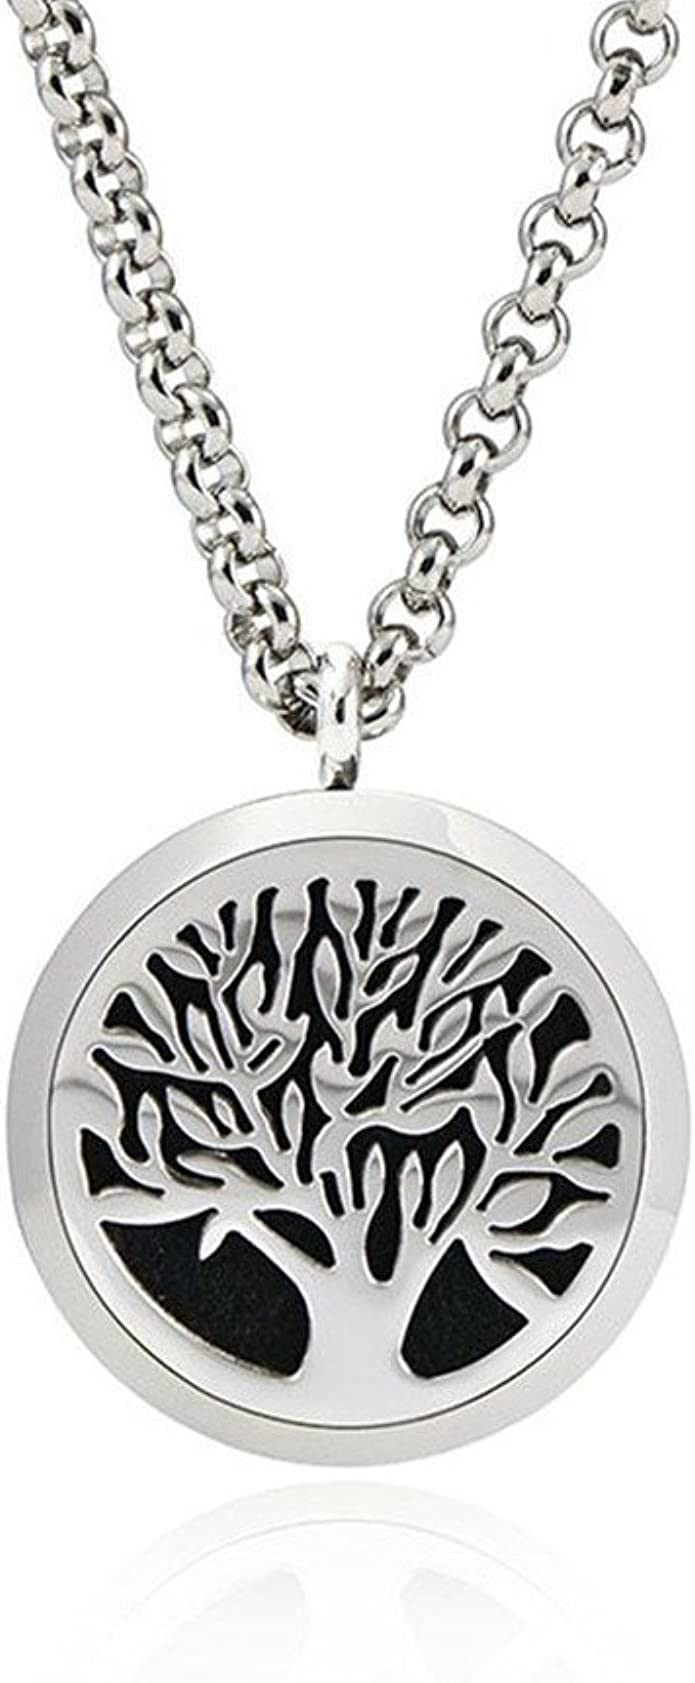 Essential Oil Diffuser Wood Peace Necklace with 24 Chain